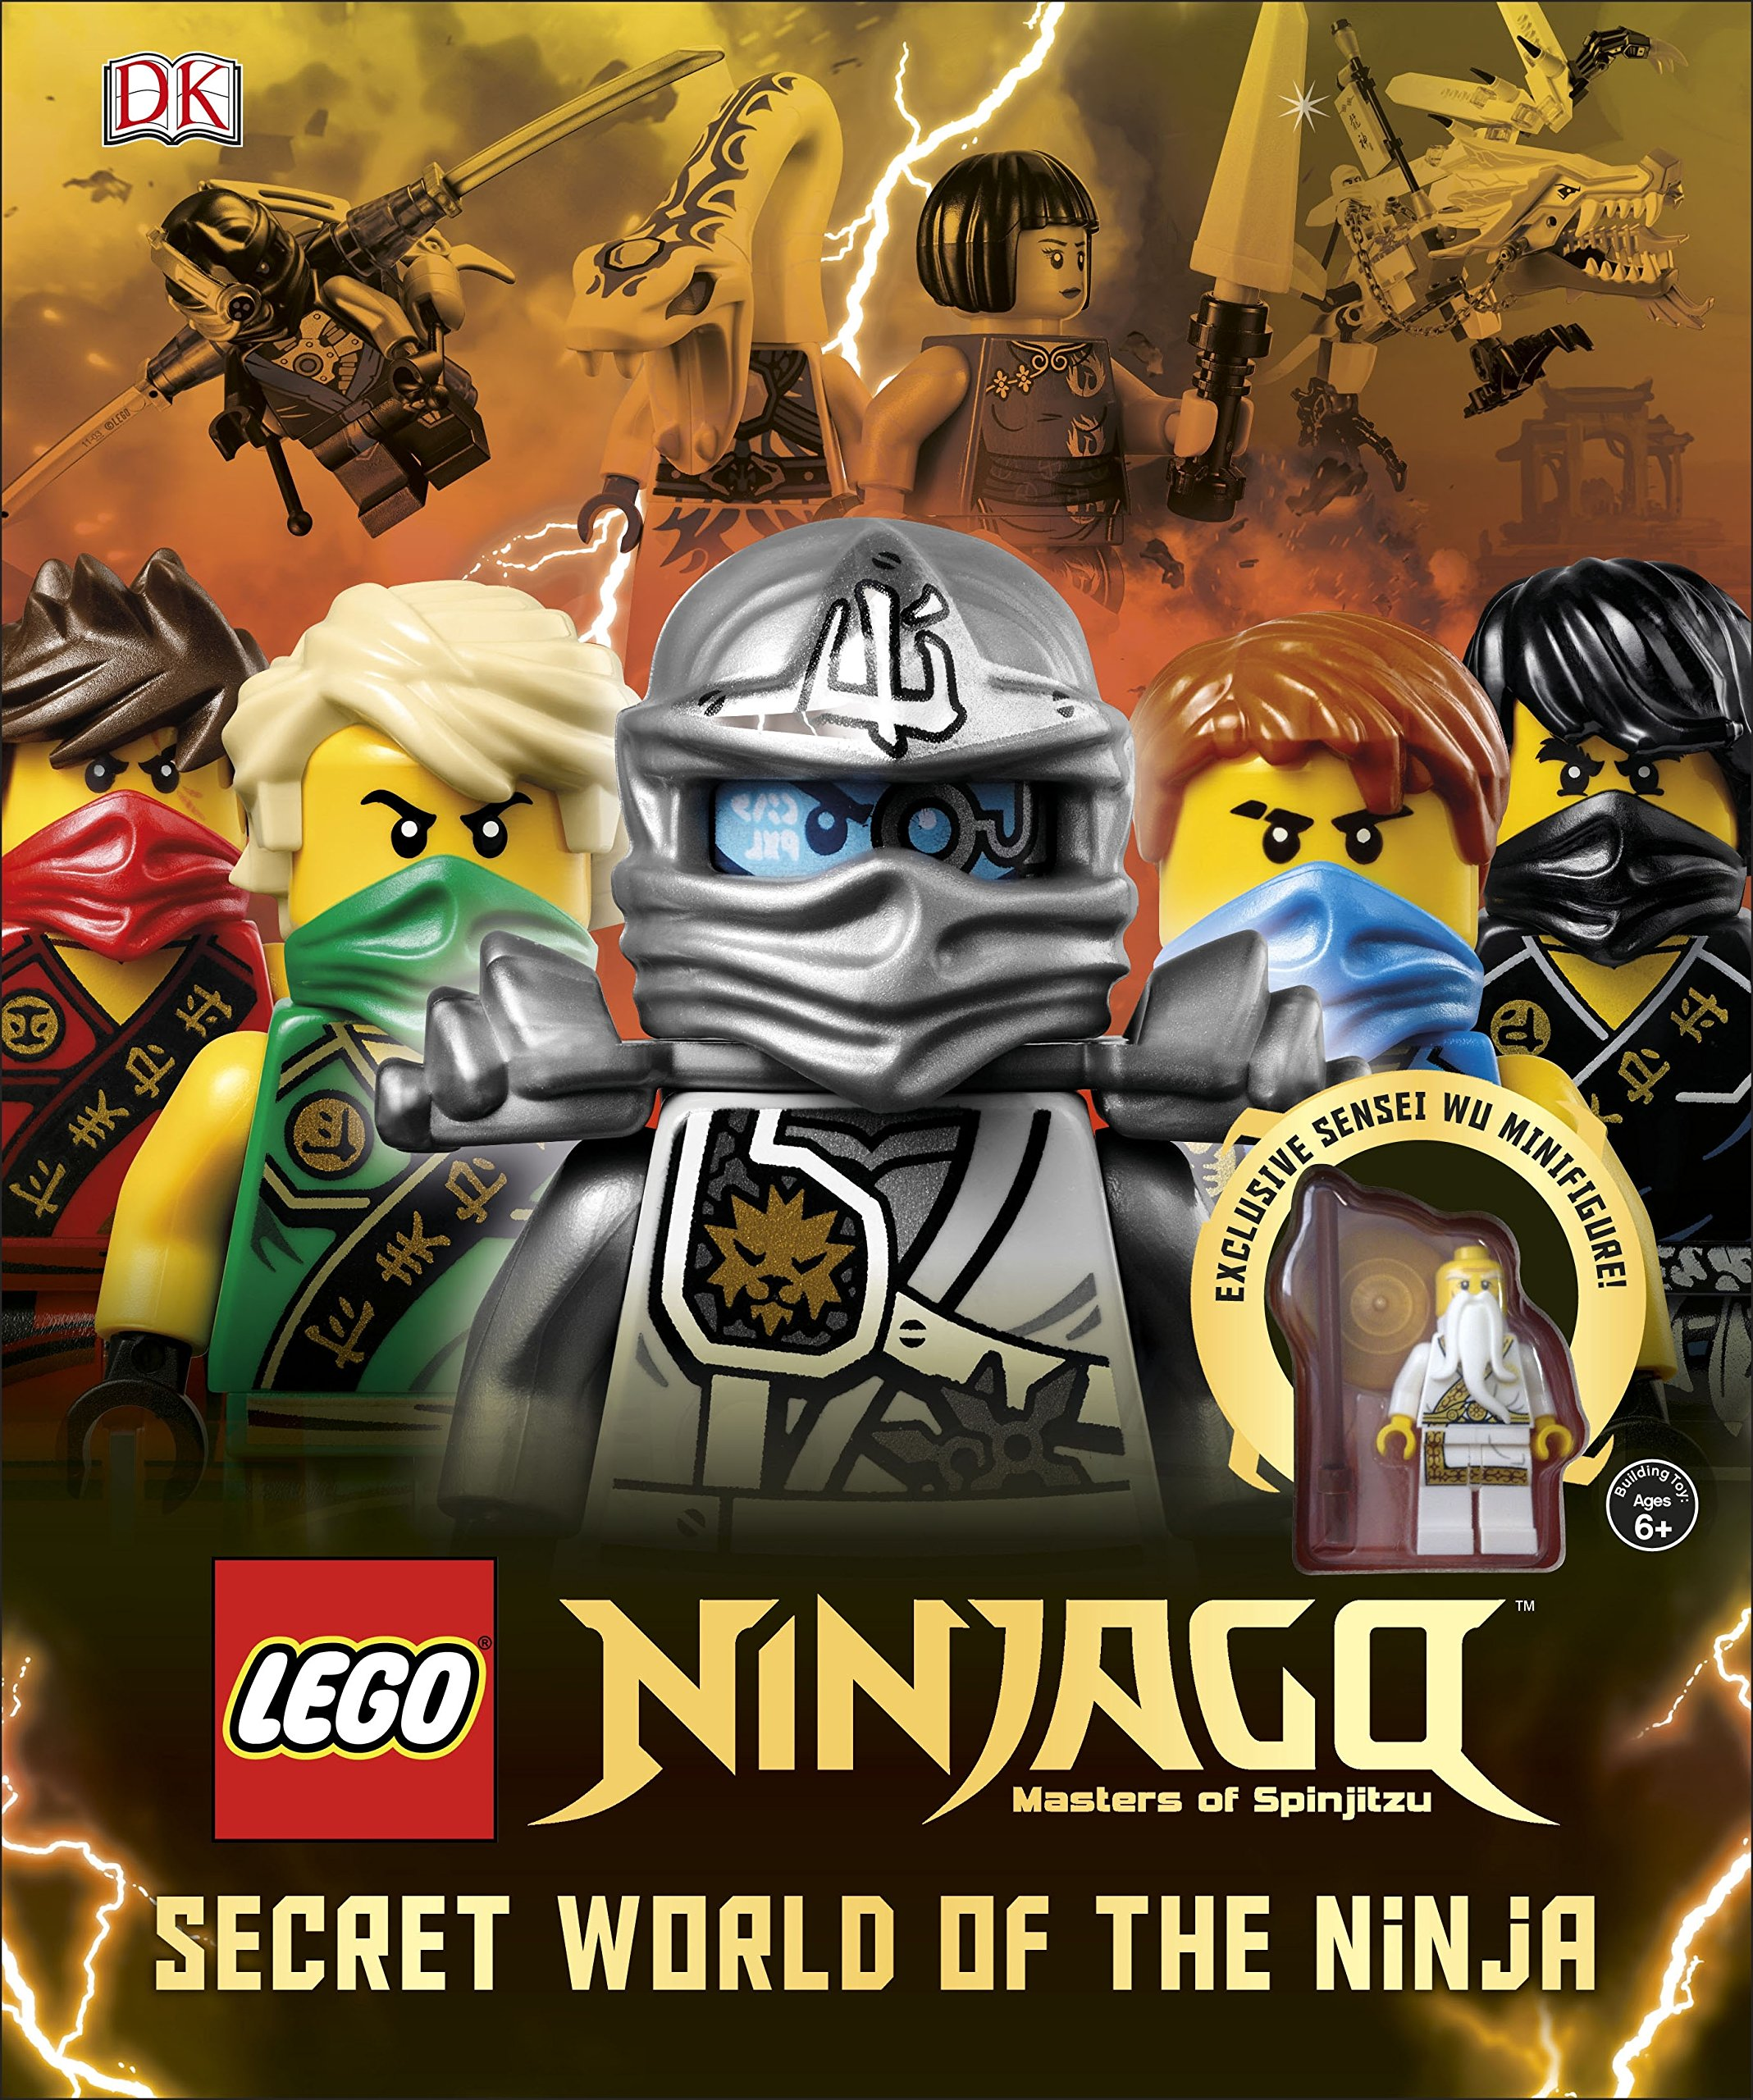 Ninjago. The Path Of The Ninja (Lego Ninjago): Amazon.es: Vv ...